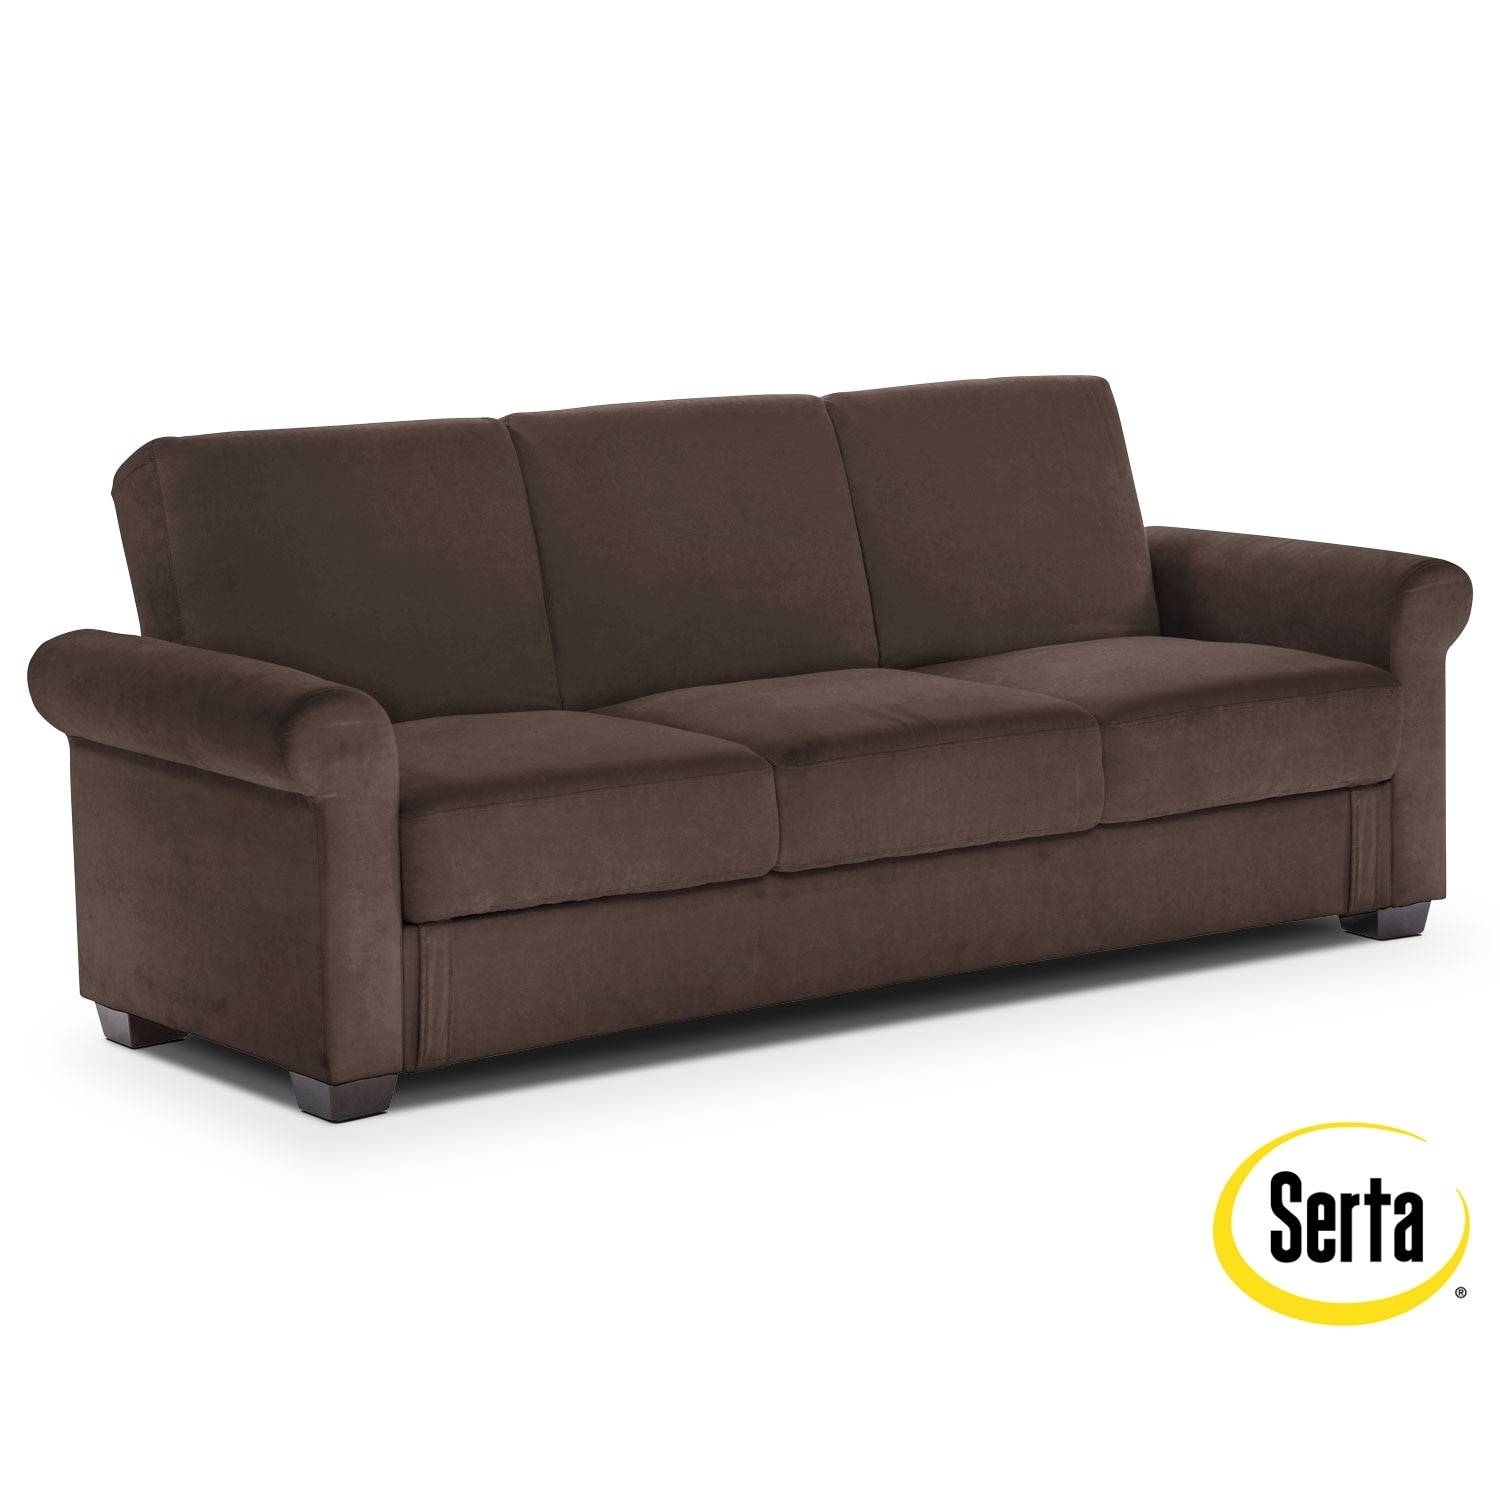 Futons | Living Room Seating | Value City Furniture pertaining to Leather Sofa Beds With Storage (Image 15 of 30)